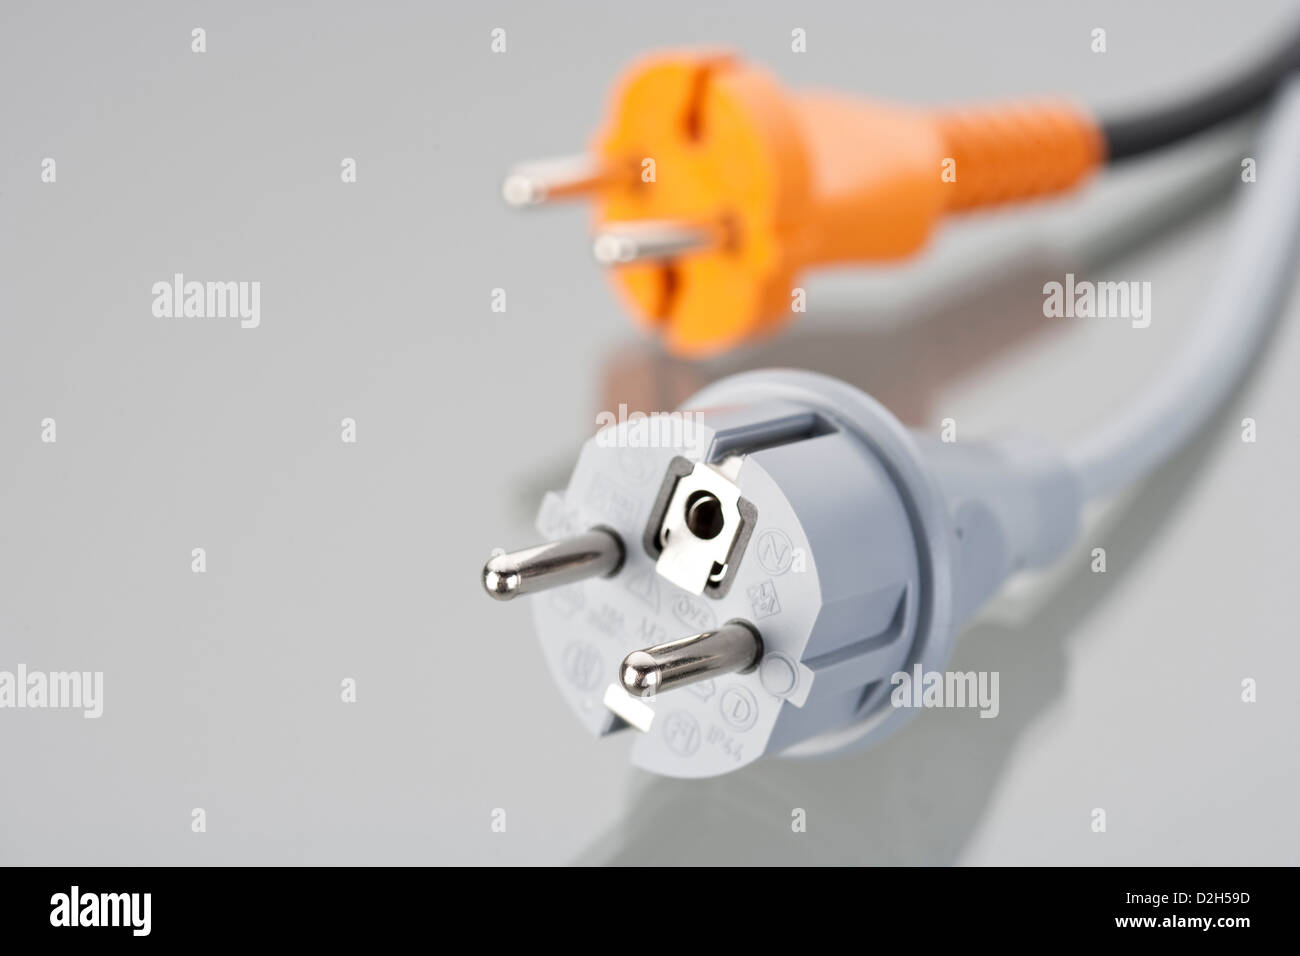 Wiring a plug germany wire center shaped plug stock photos shaped plug stock images alamy rh alamy com wiring a plug in germany 3 prong plug wiring diagram cheapraybanclubmaster Gallery